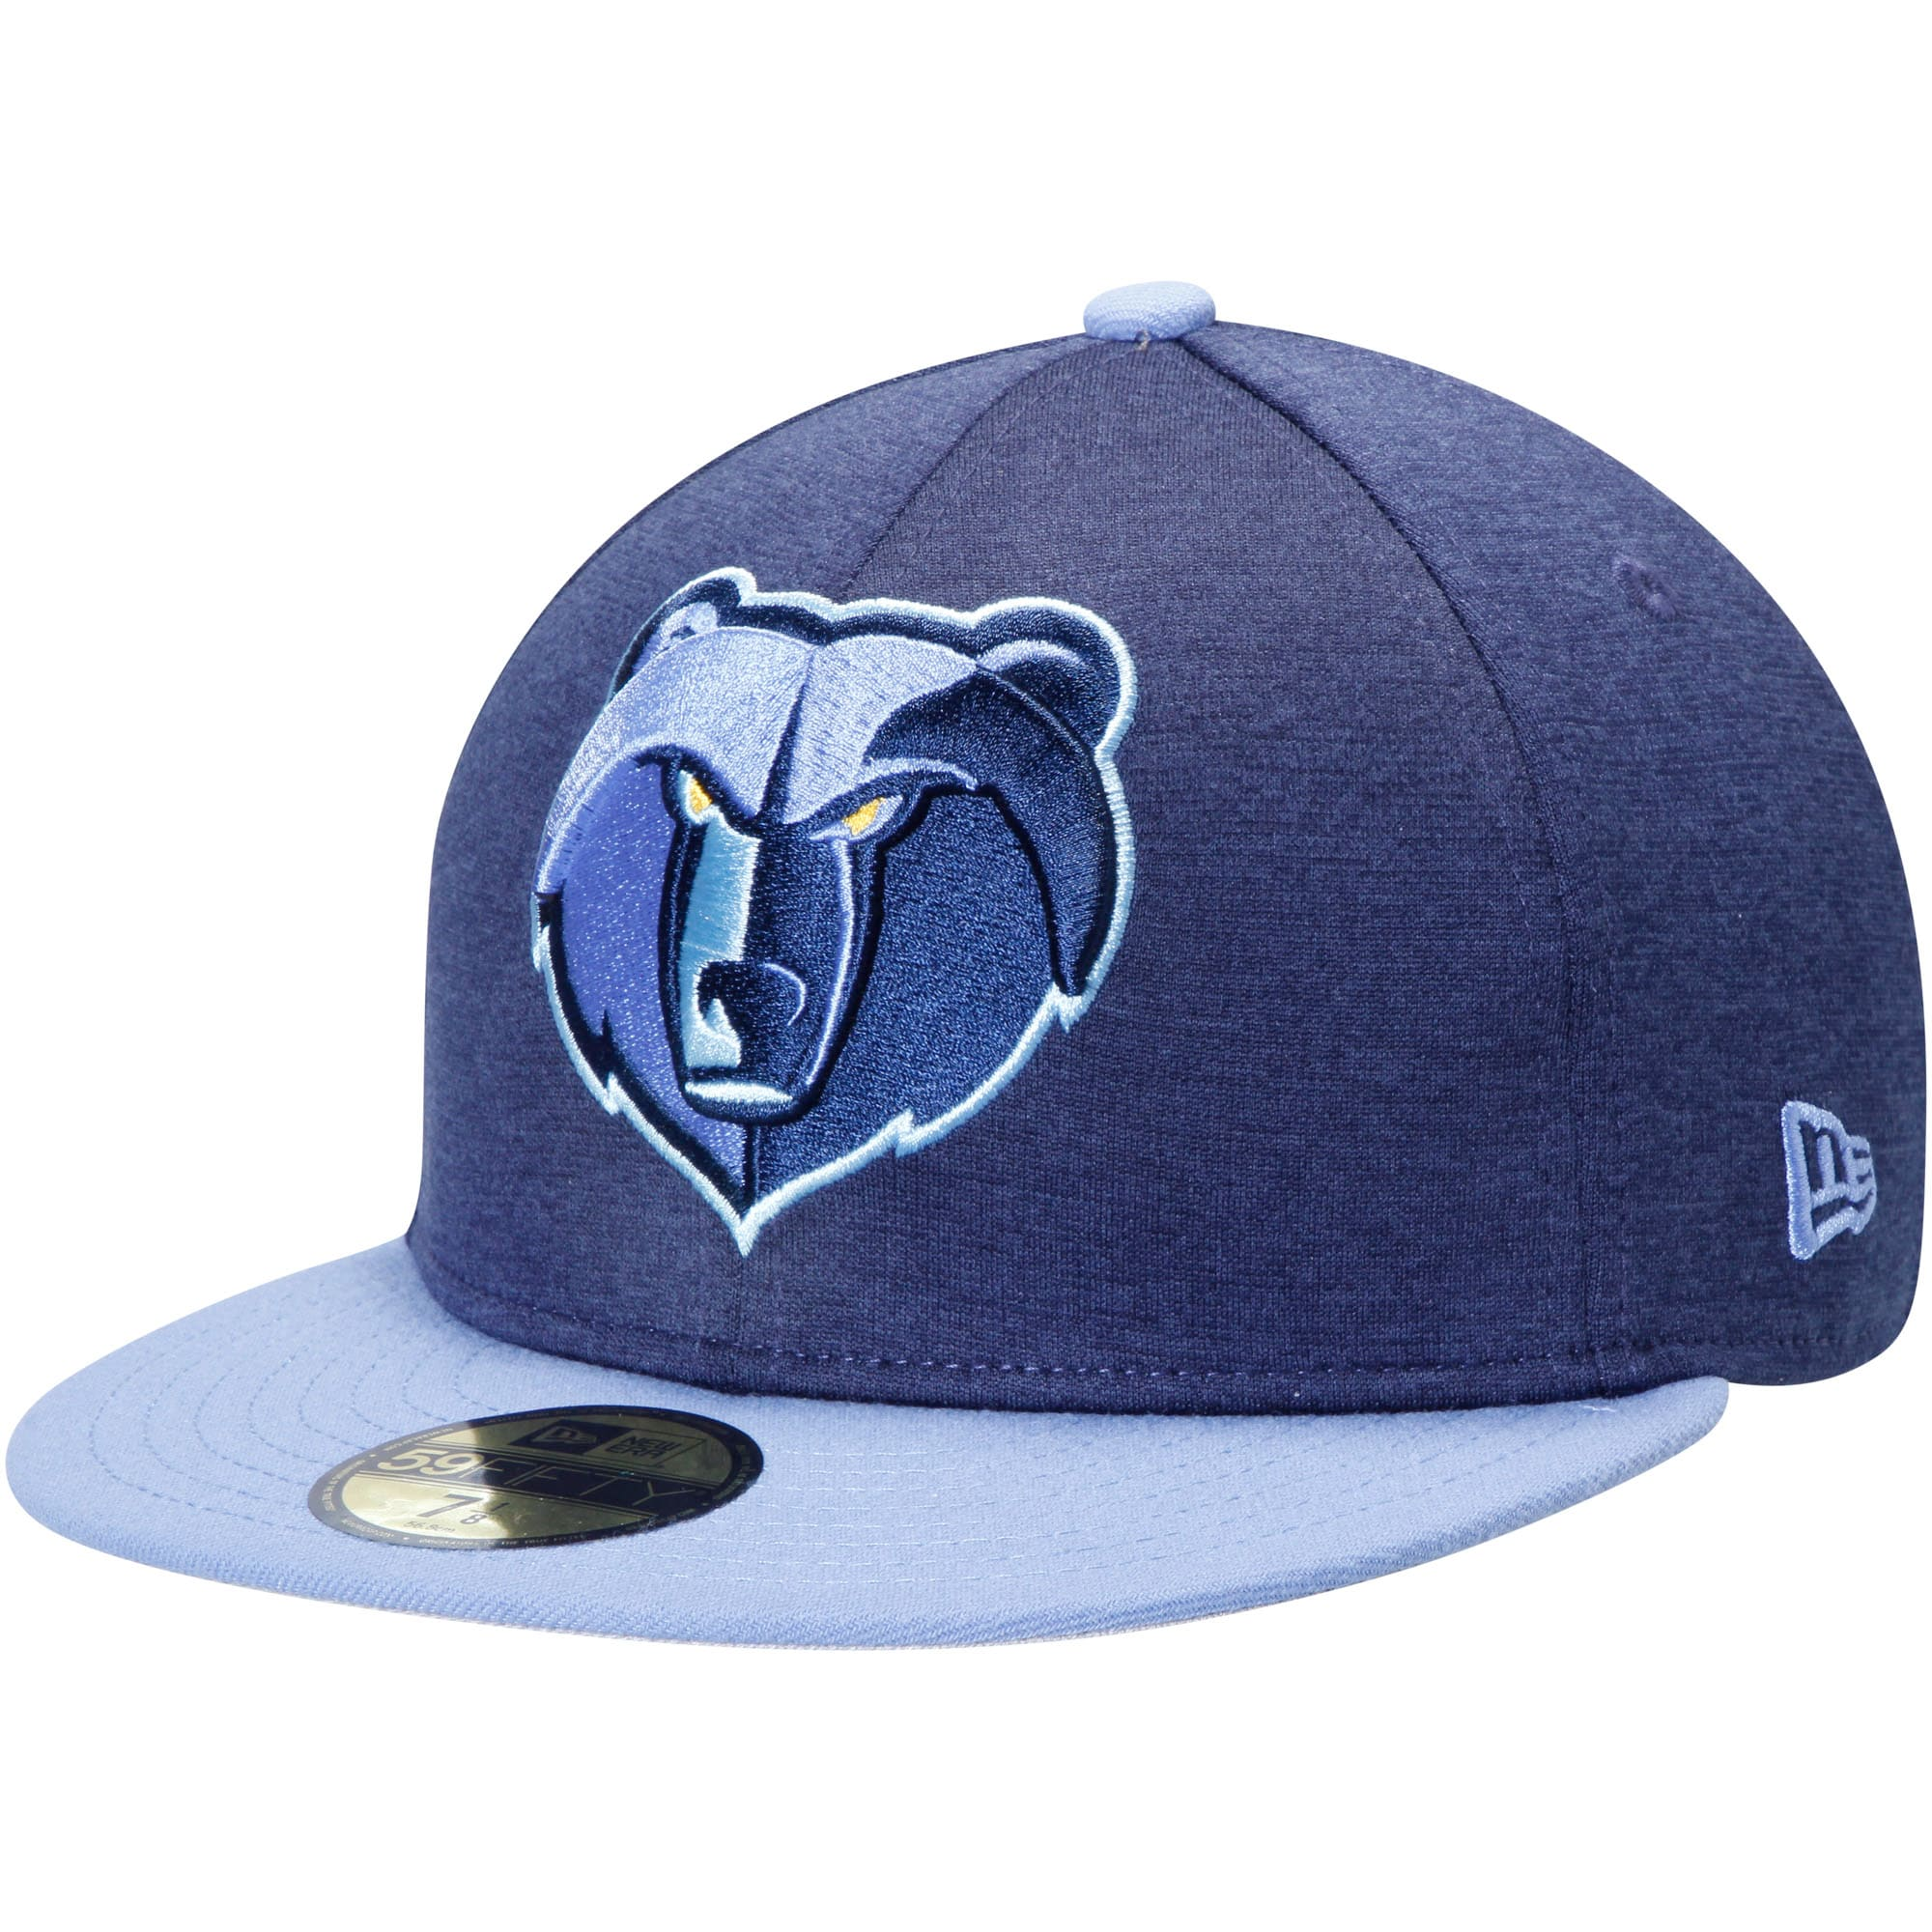 Memphis Grizzlies New Era Huge Logo 59FIFTY Fitted Hat - Navy